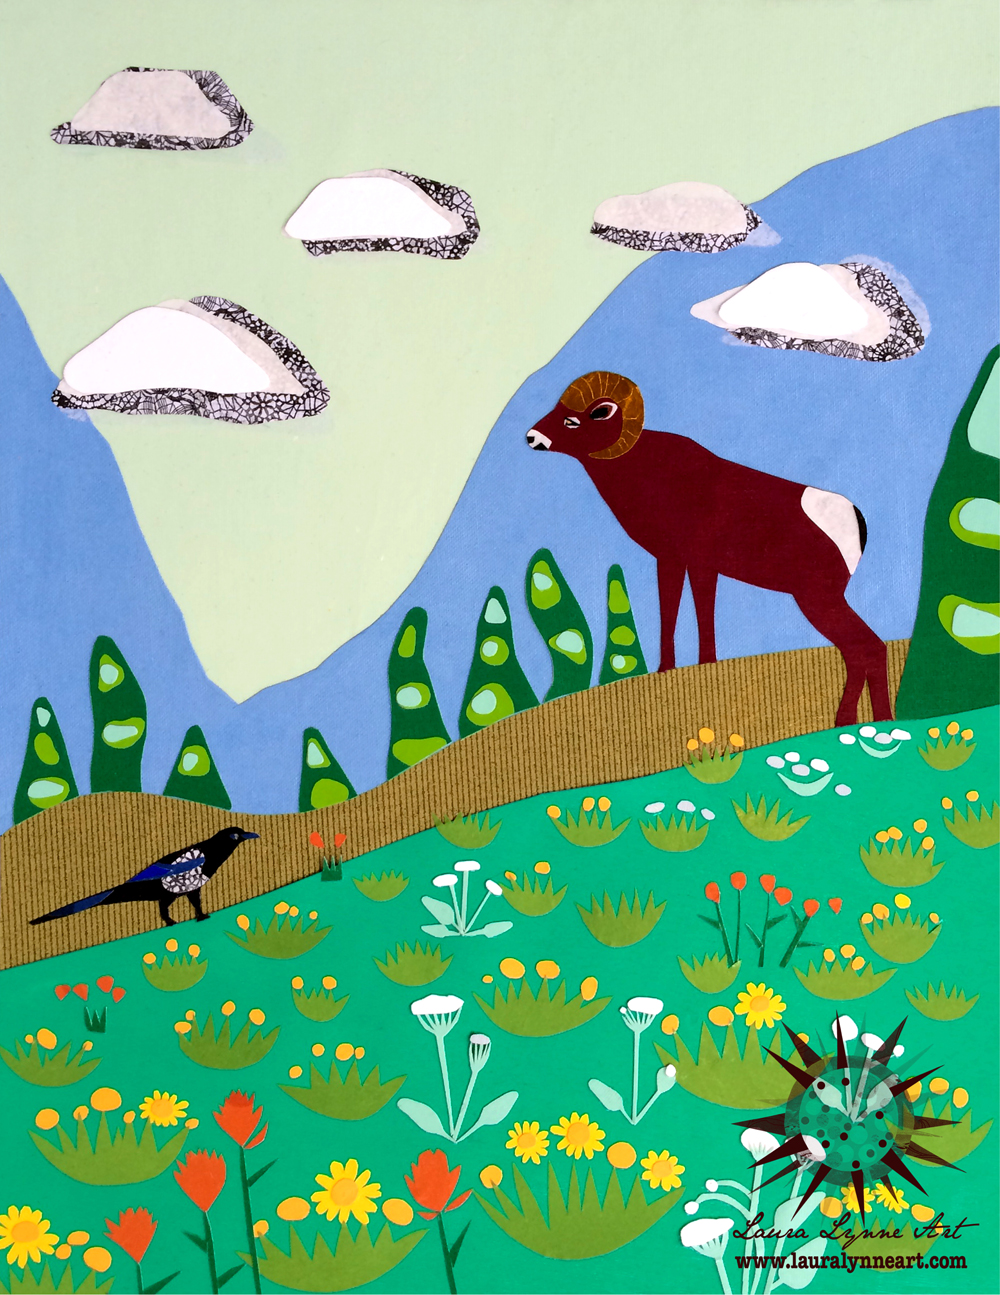 aries-ram-art-collage-with-magpie-wildflower-collage